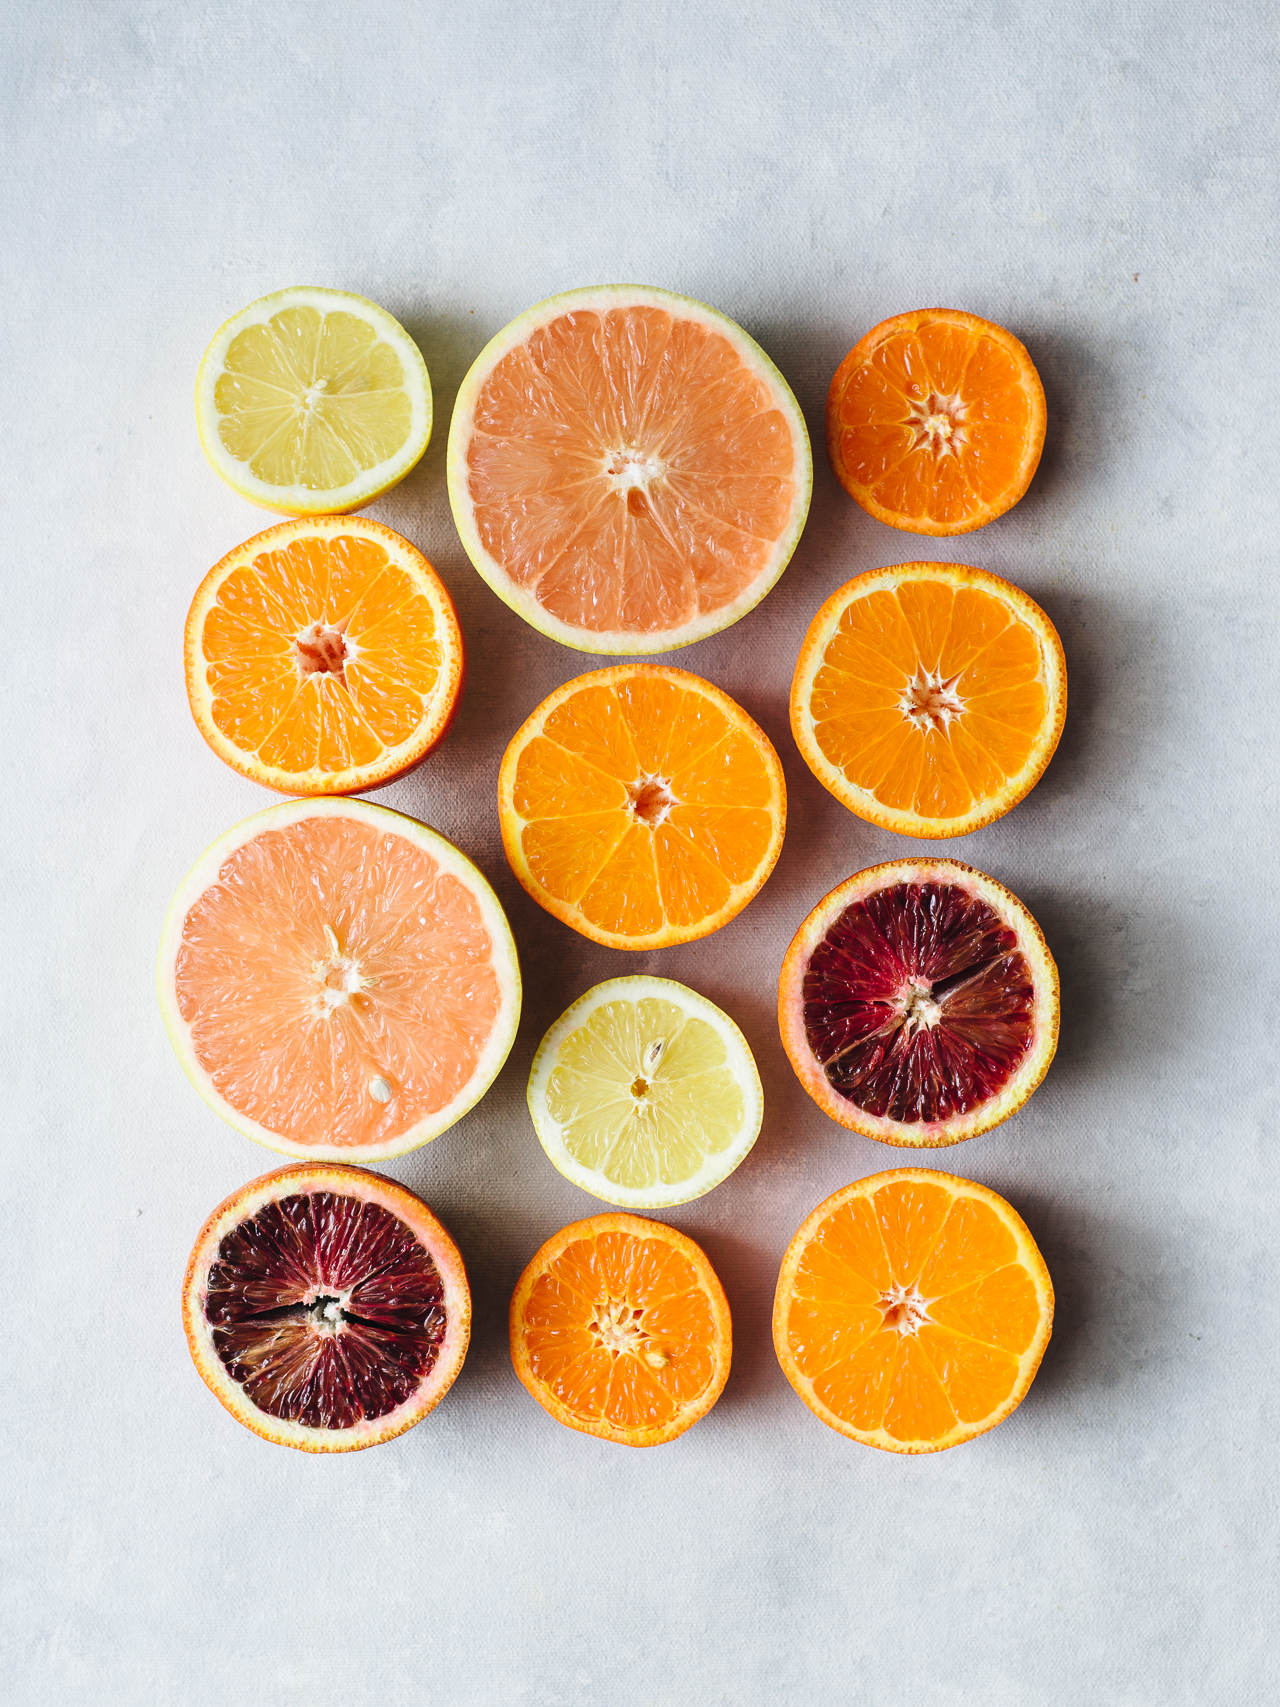 Colors of Citrus | Flavors of Light